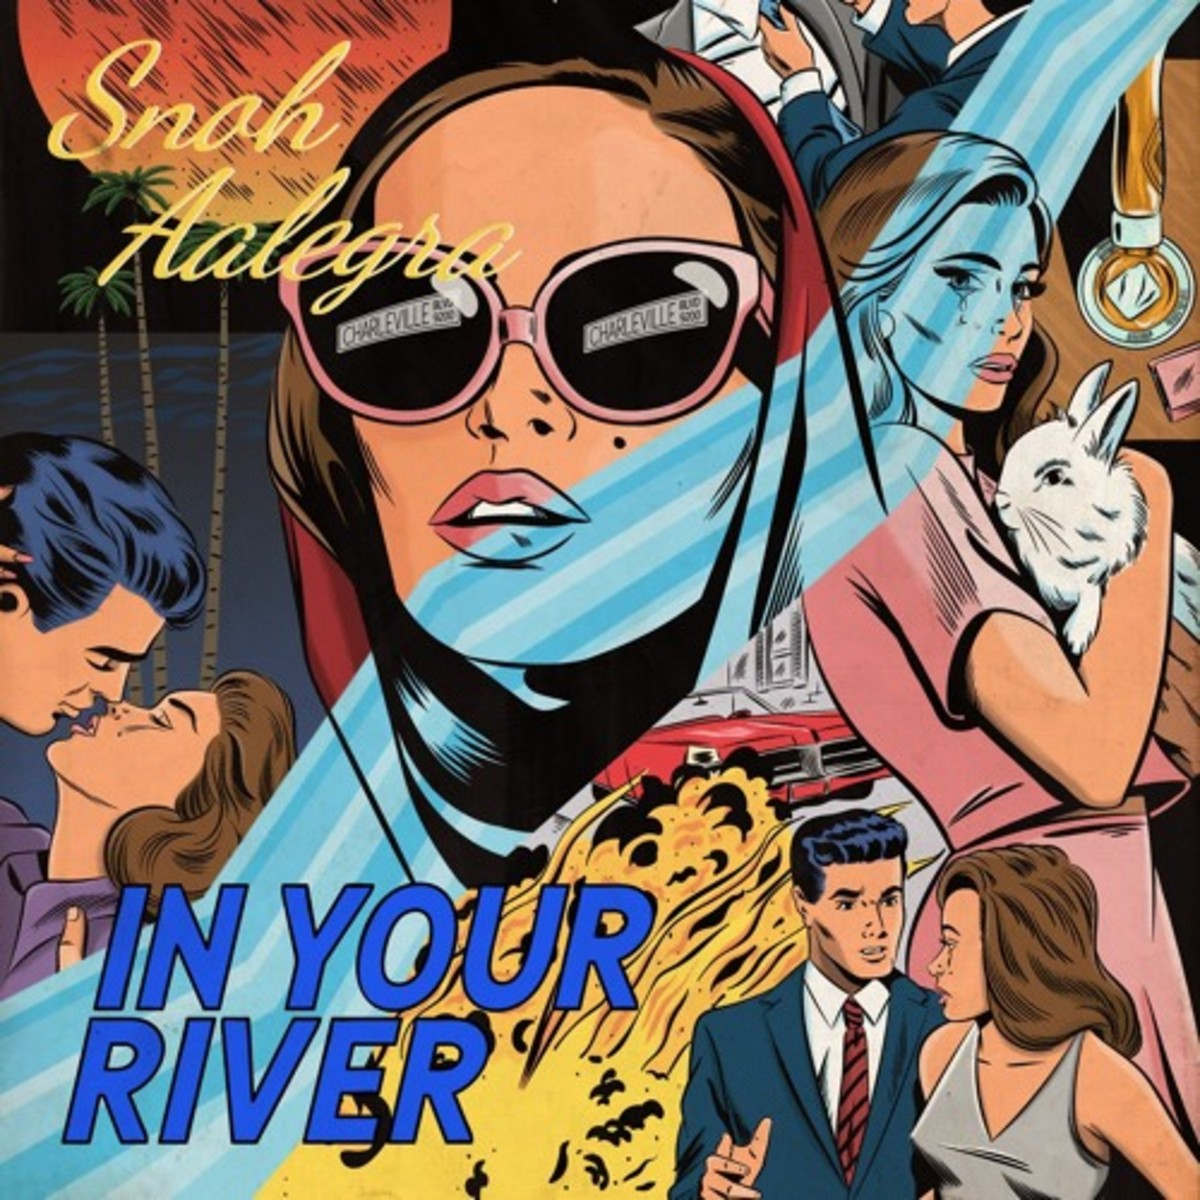 snoh-aalegra-in-your-river.jpg